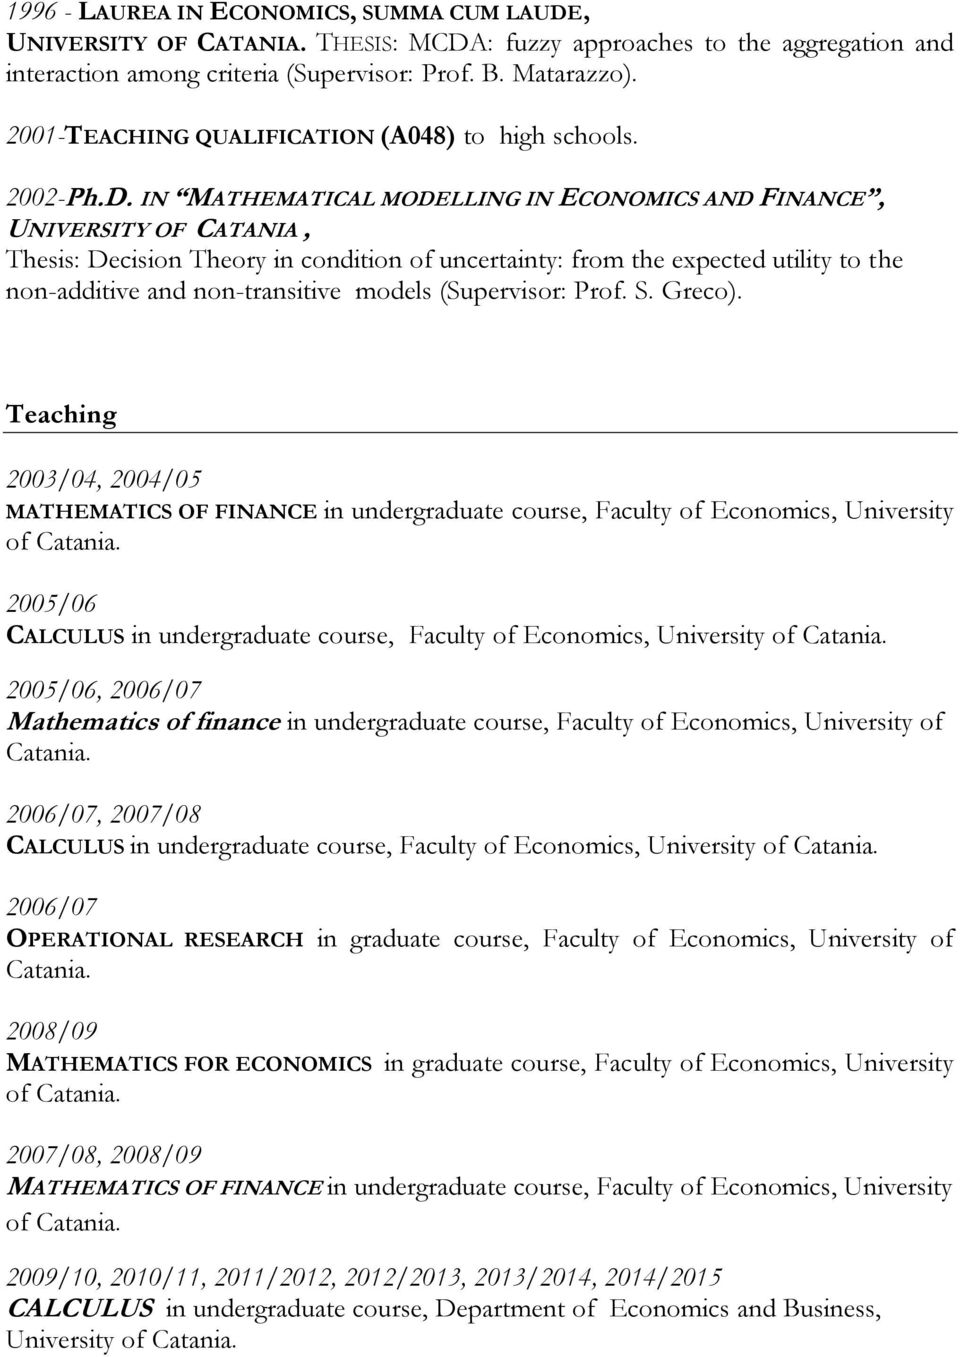 IN MATHEMATICAL MODELLING IN ECONOMICS AND FINANCE, UNIVERSITY OF CATANIA, Thesis: Decision Theory in condition of uncertainty: from the expected utility to the non-additive and non-transitive models